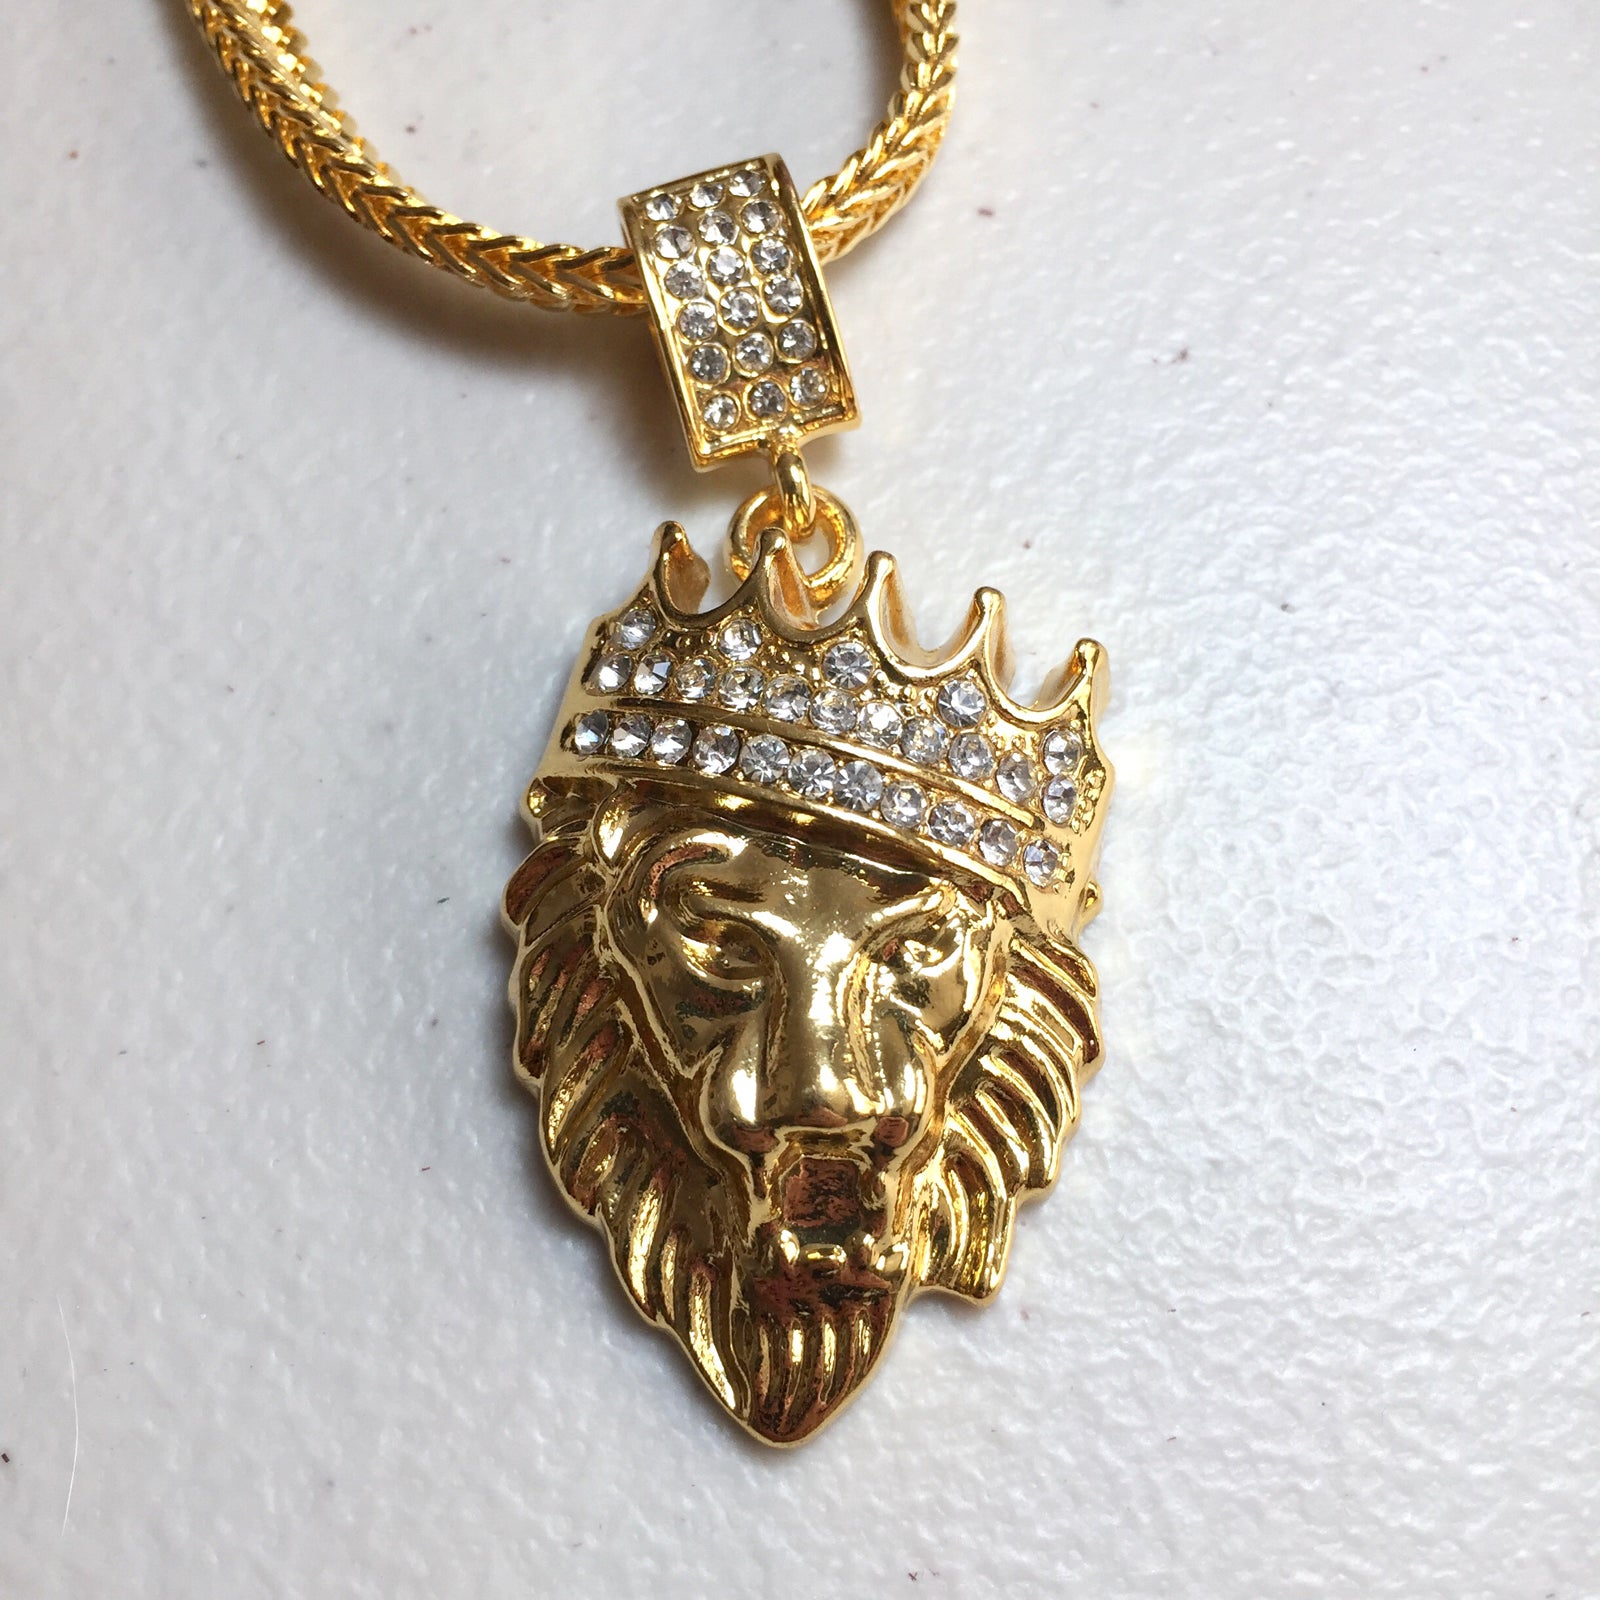 uk en accessories lioncoinnecklace gb versace jewellery online store women fjmt for coin fashionjewellery pendant versus lion fashion necklace